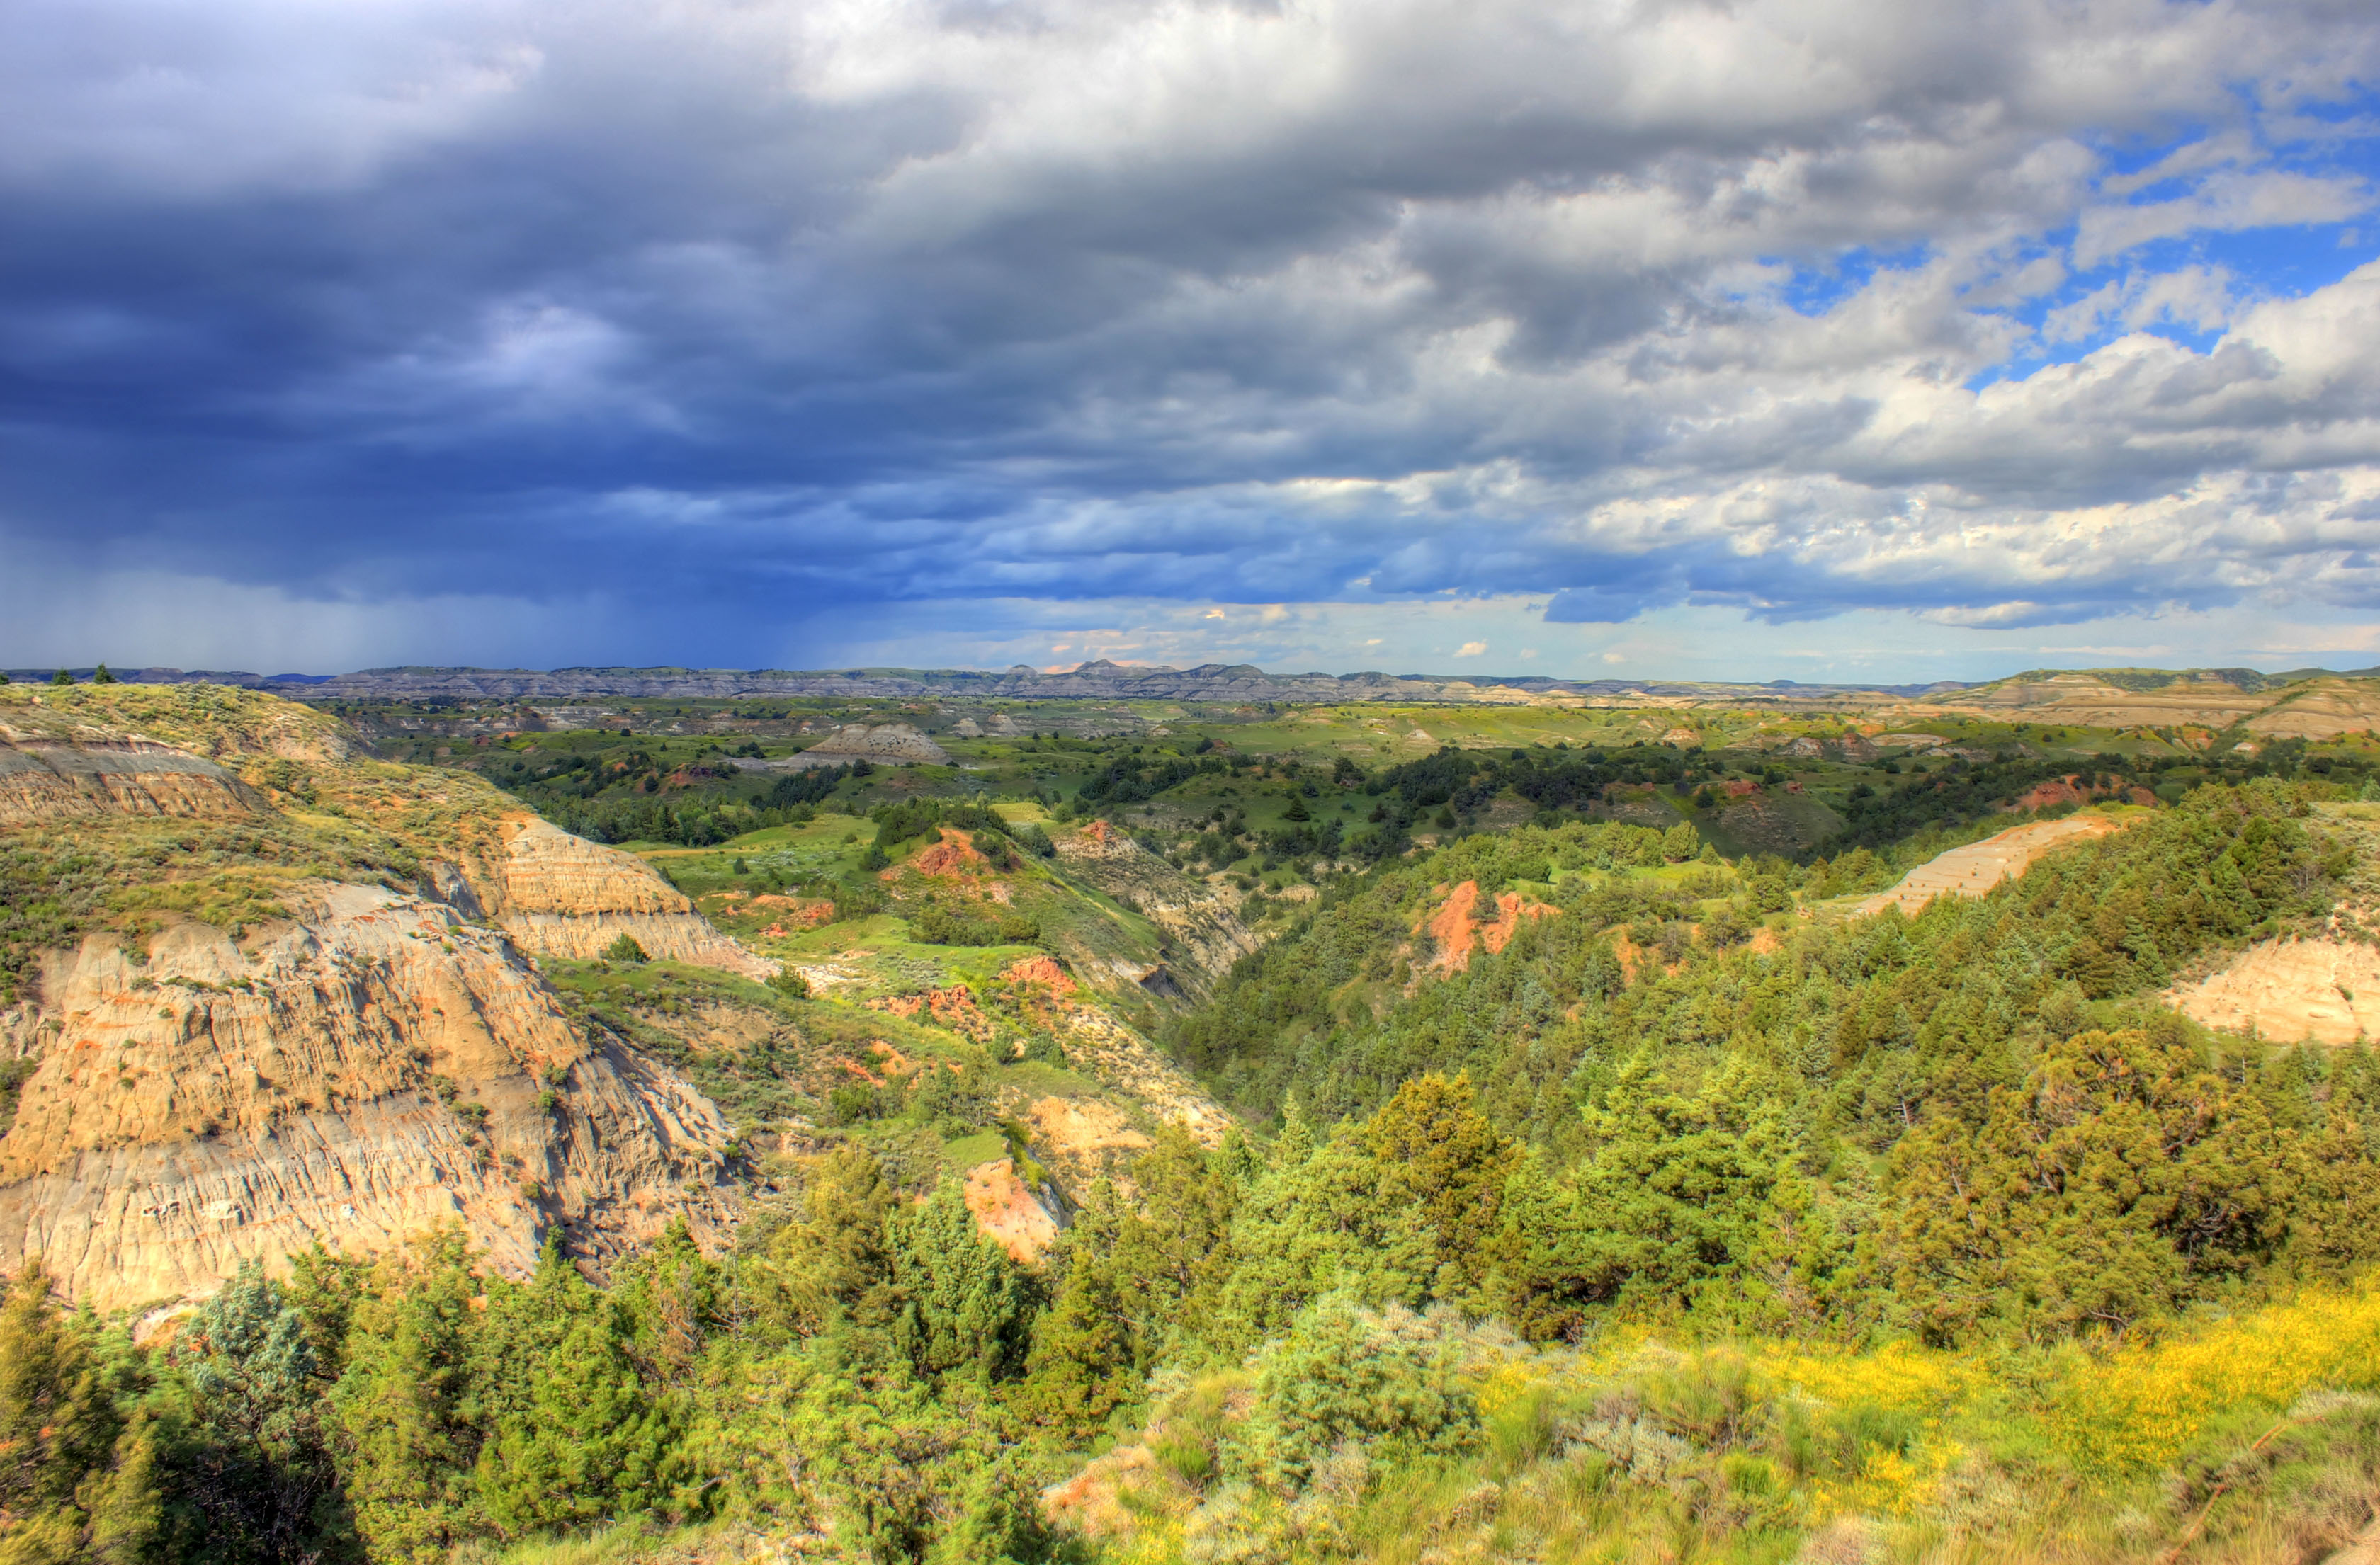 Rain in the distance at Theodore Roosevelt National Park North 3360x2210